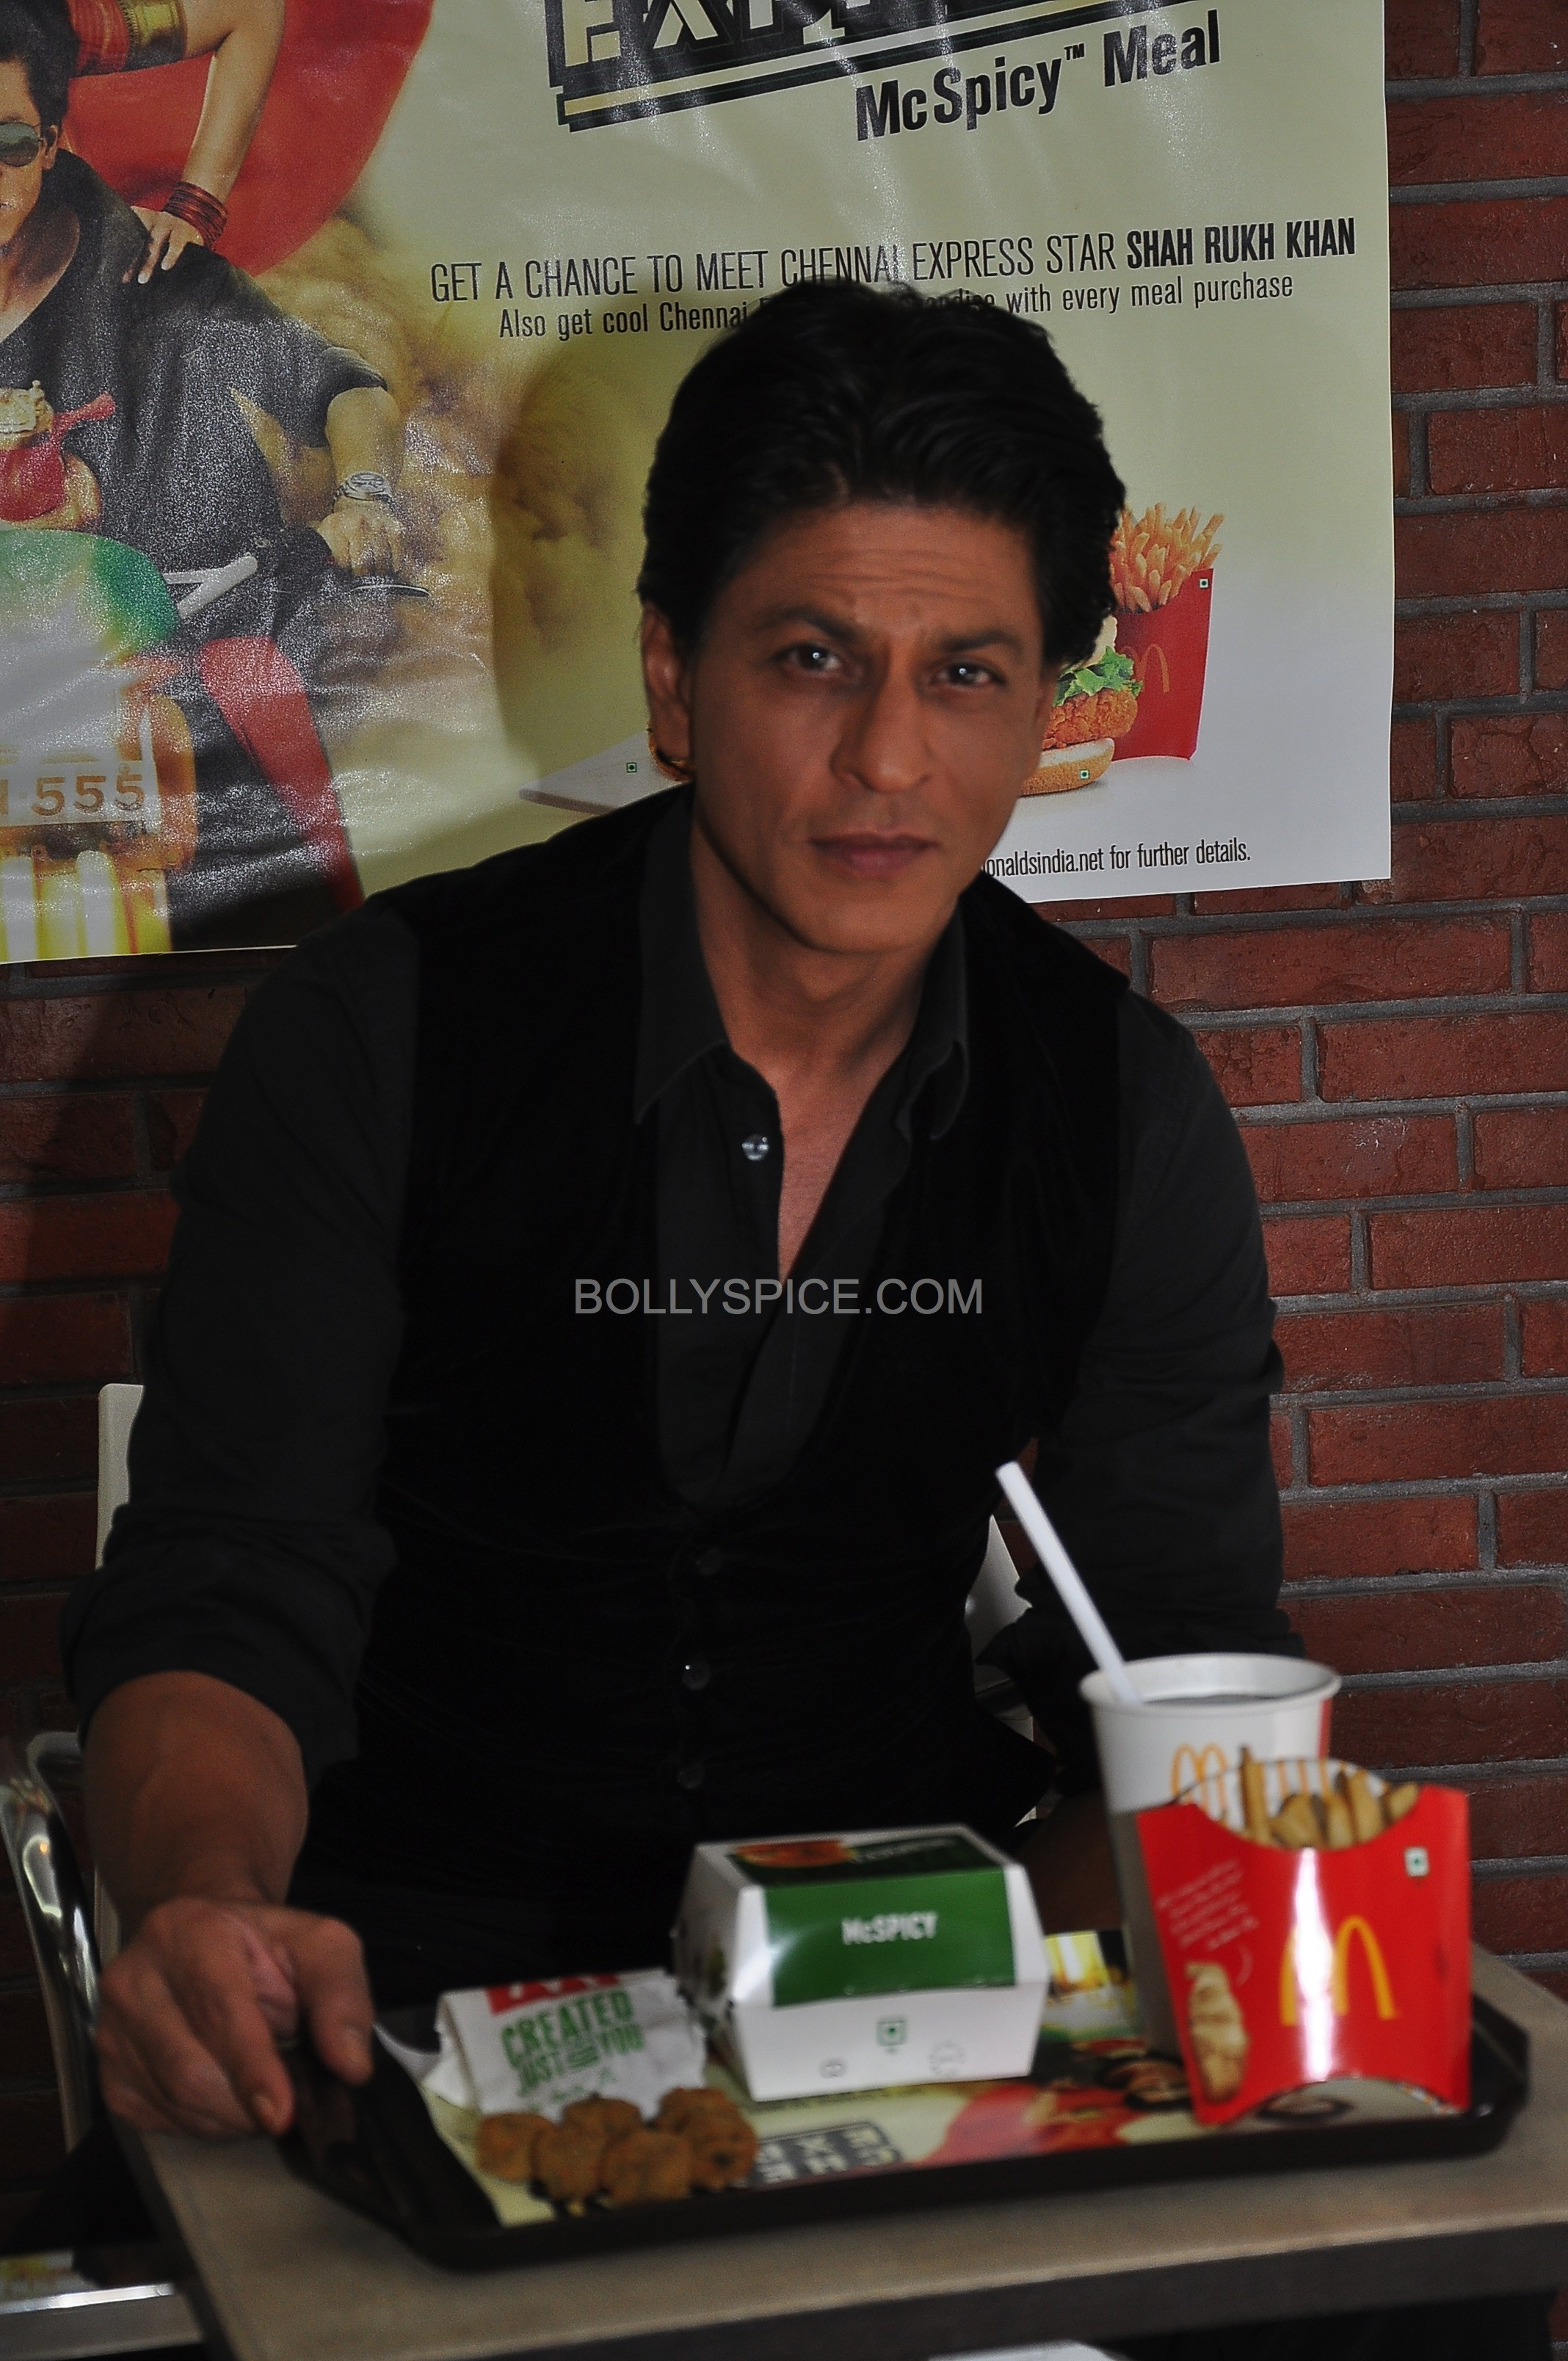 srkchennaiexpressmcdonalds04 e1375459004258 In Pictures and Video: Meet and Greet with King Khan in Delhi for the Chennai Express McSpicy Meal